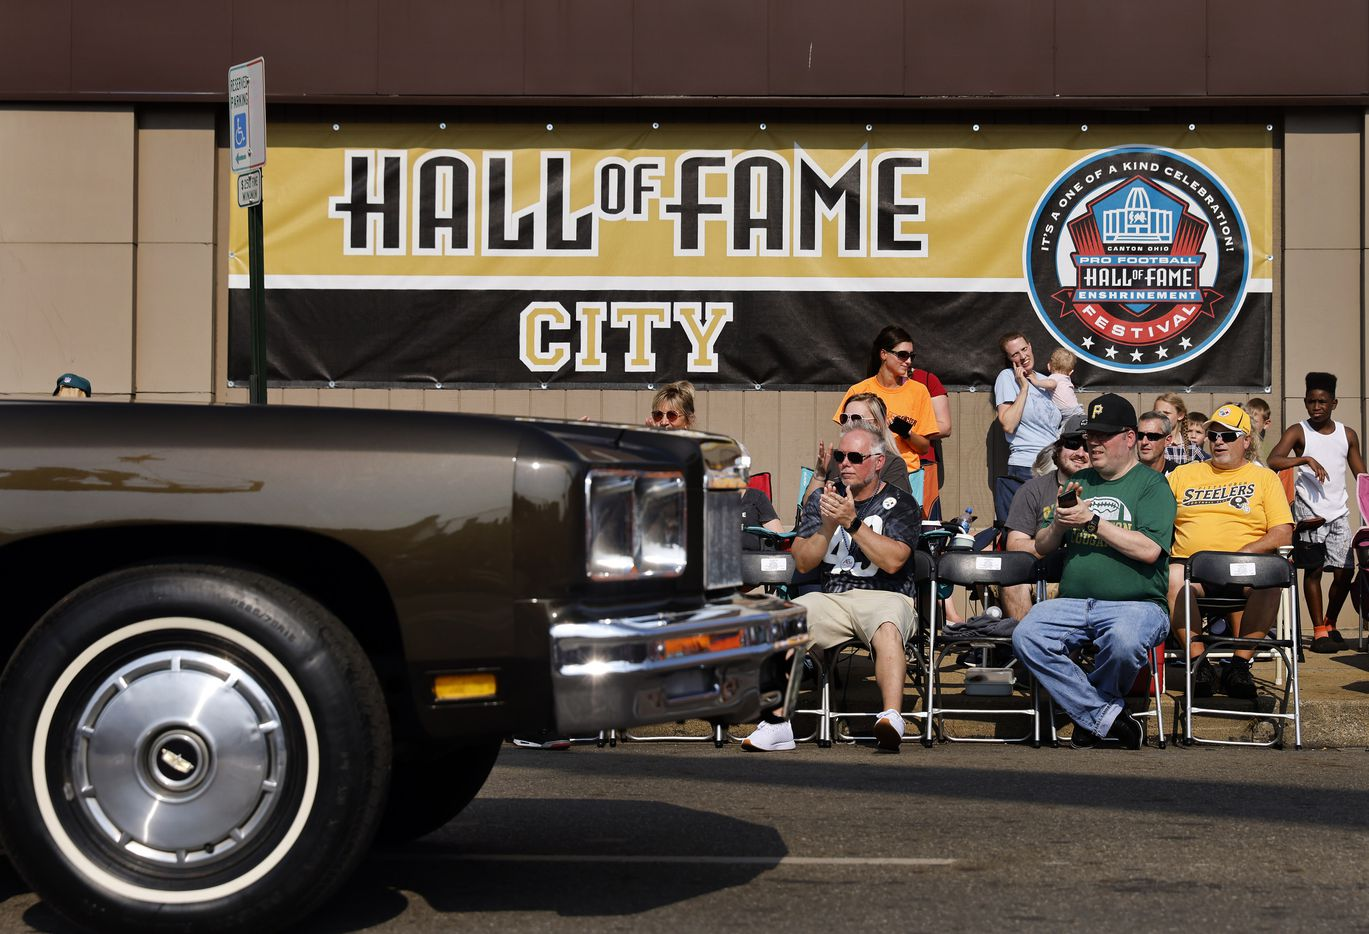 NFL football fans watch as Pro Football Hall of Fame members pass by in classic cars during the Canton Repository Grand Parade in downtown Canton, Ohio, Saturday, August 7, 2021. The parade honored newly elected and former members of the Hall, including newcomers and former Dallas Cowboys players Cliff Harris, Drew Pearson and head coach Jimmy Johnson. (Tom Fox/The Dallas Morning News)